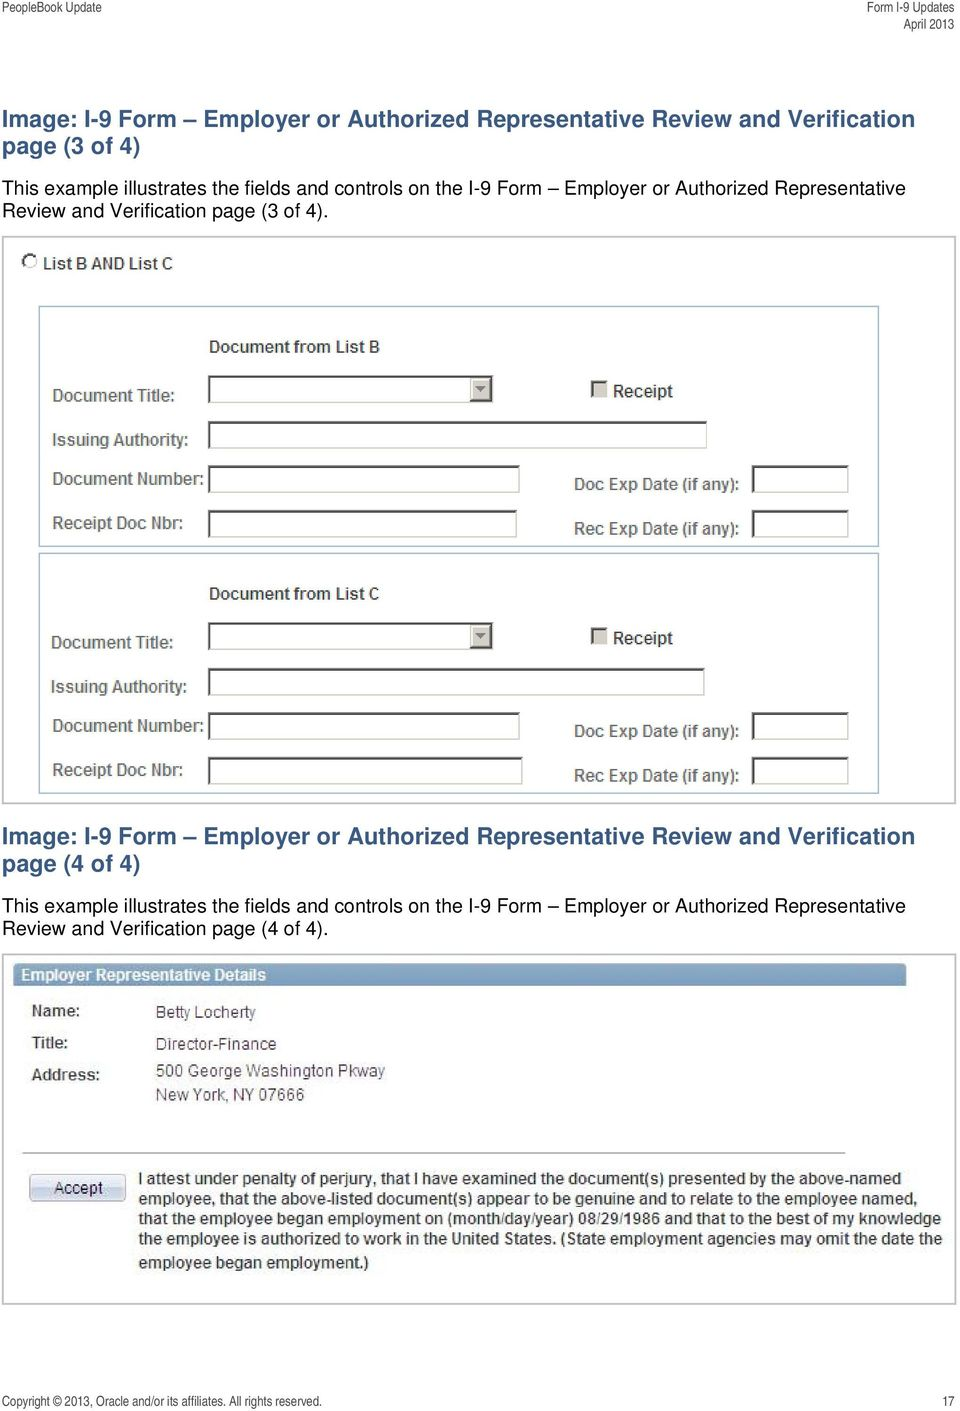 Image: I-9 Form Employer or Authorized Representative Review and Verification page (4 of 4) This example illustrates the fields and